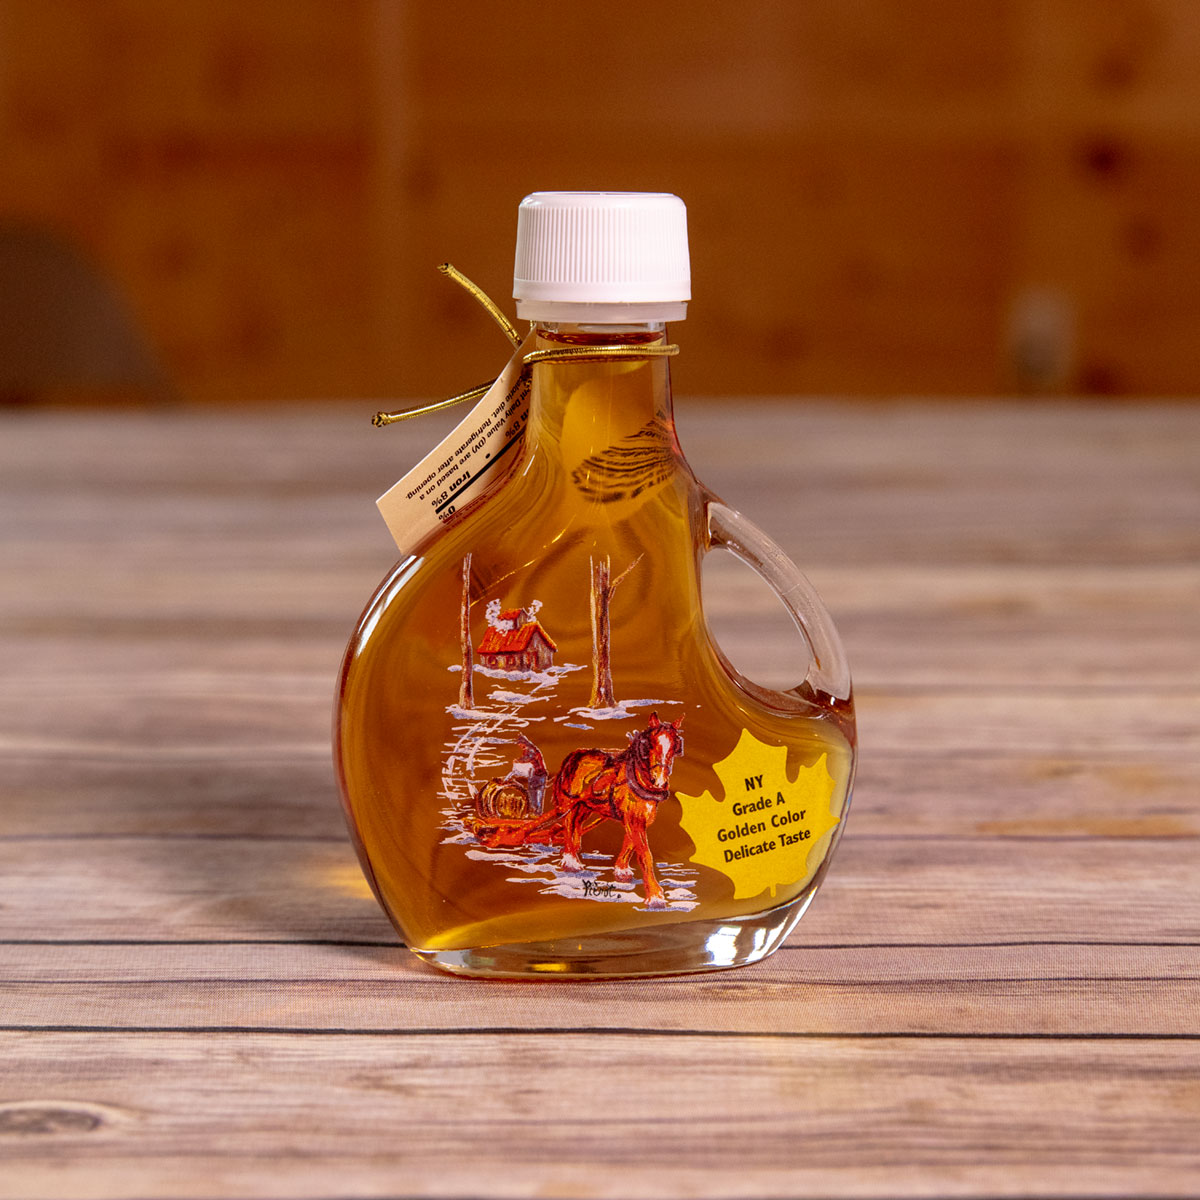 Bechard's PURE Maple Syrup Decorative Glass Jar 8.5 oz - Sugar House Basquaise